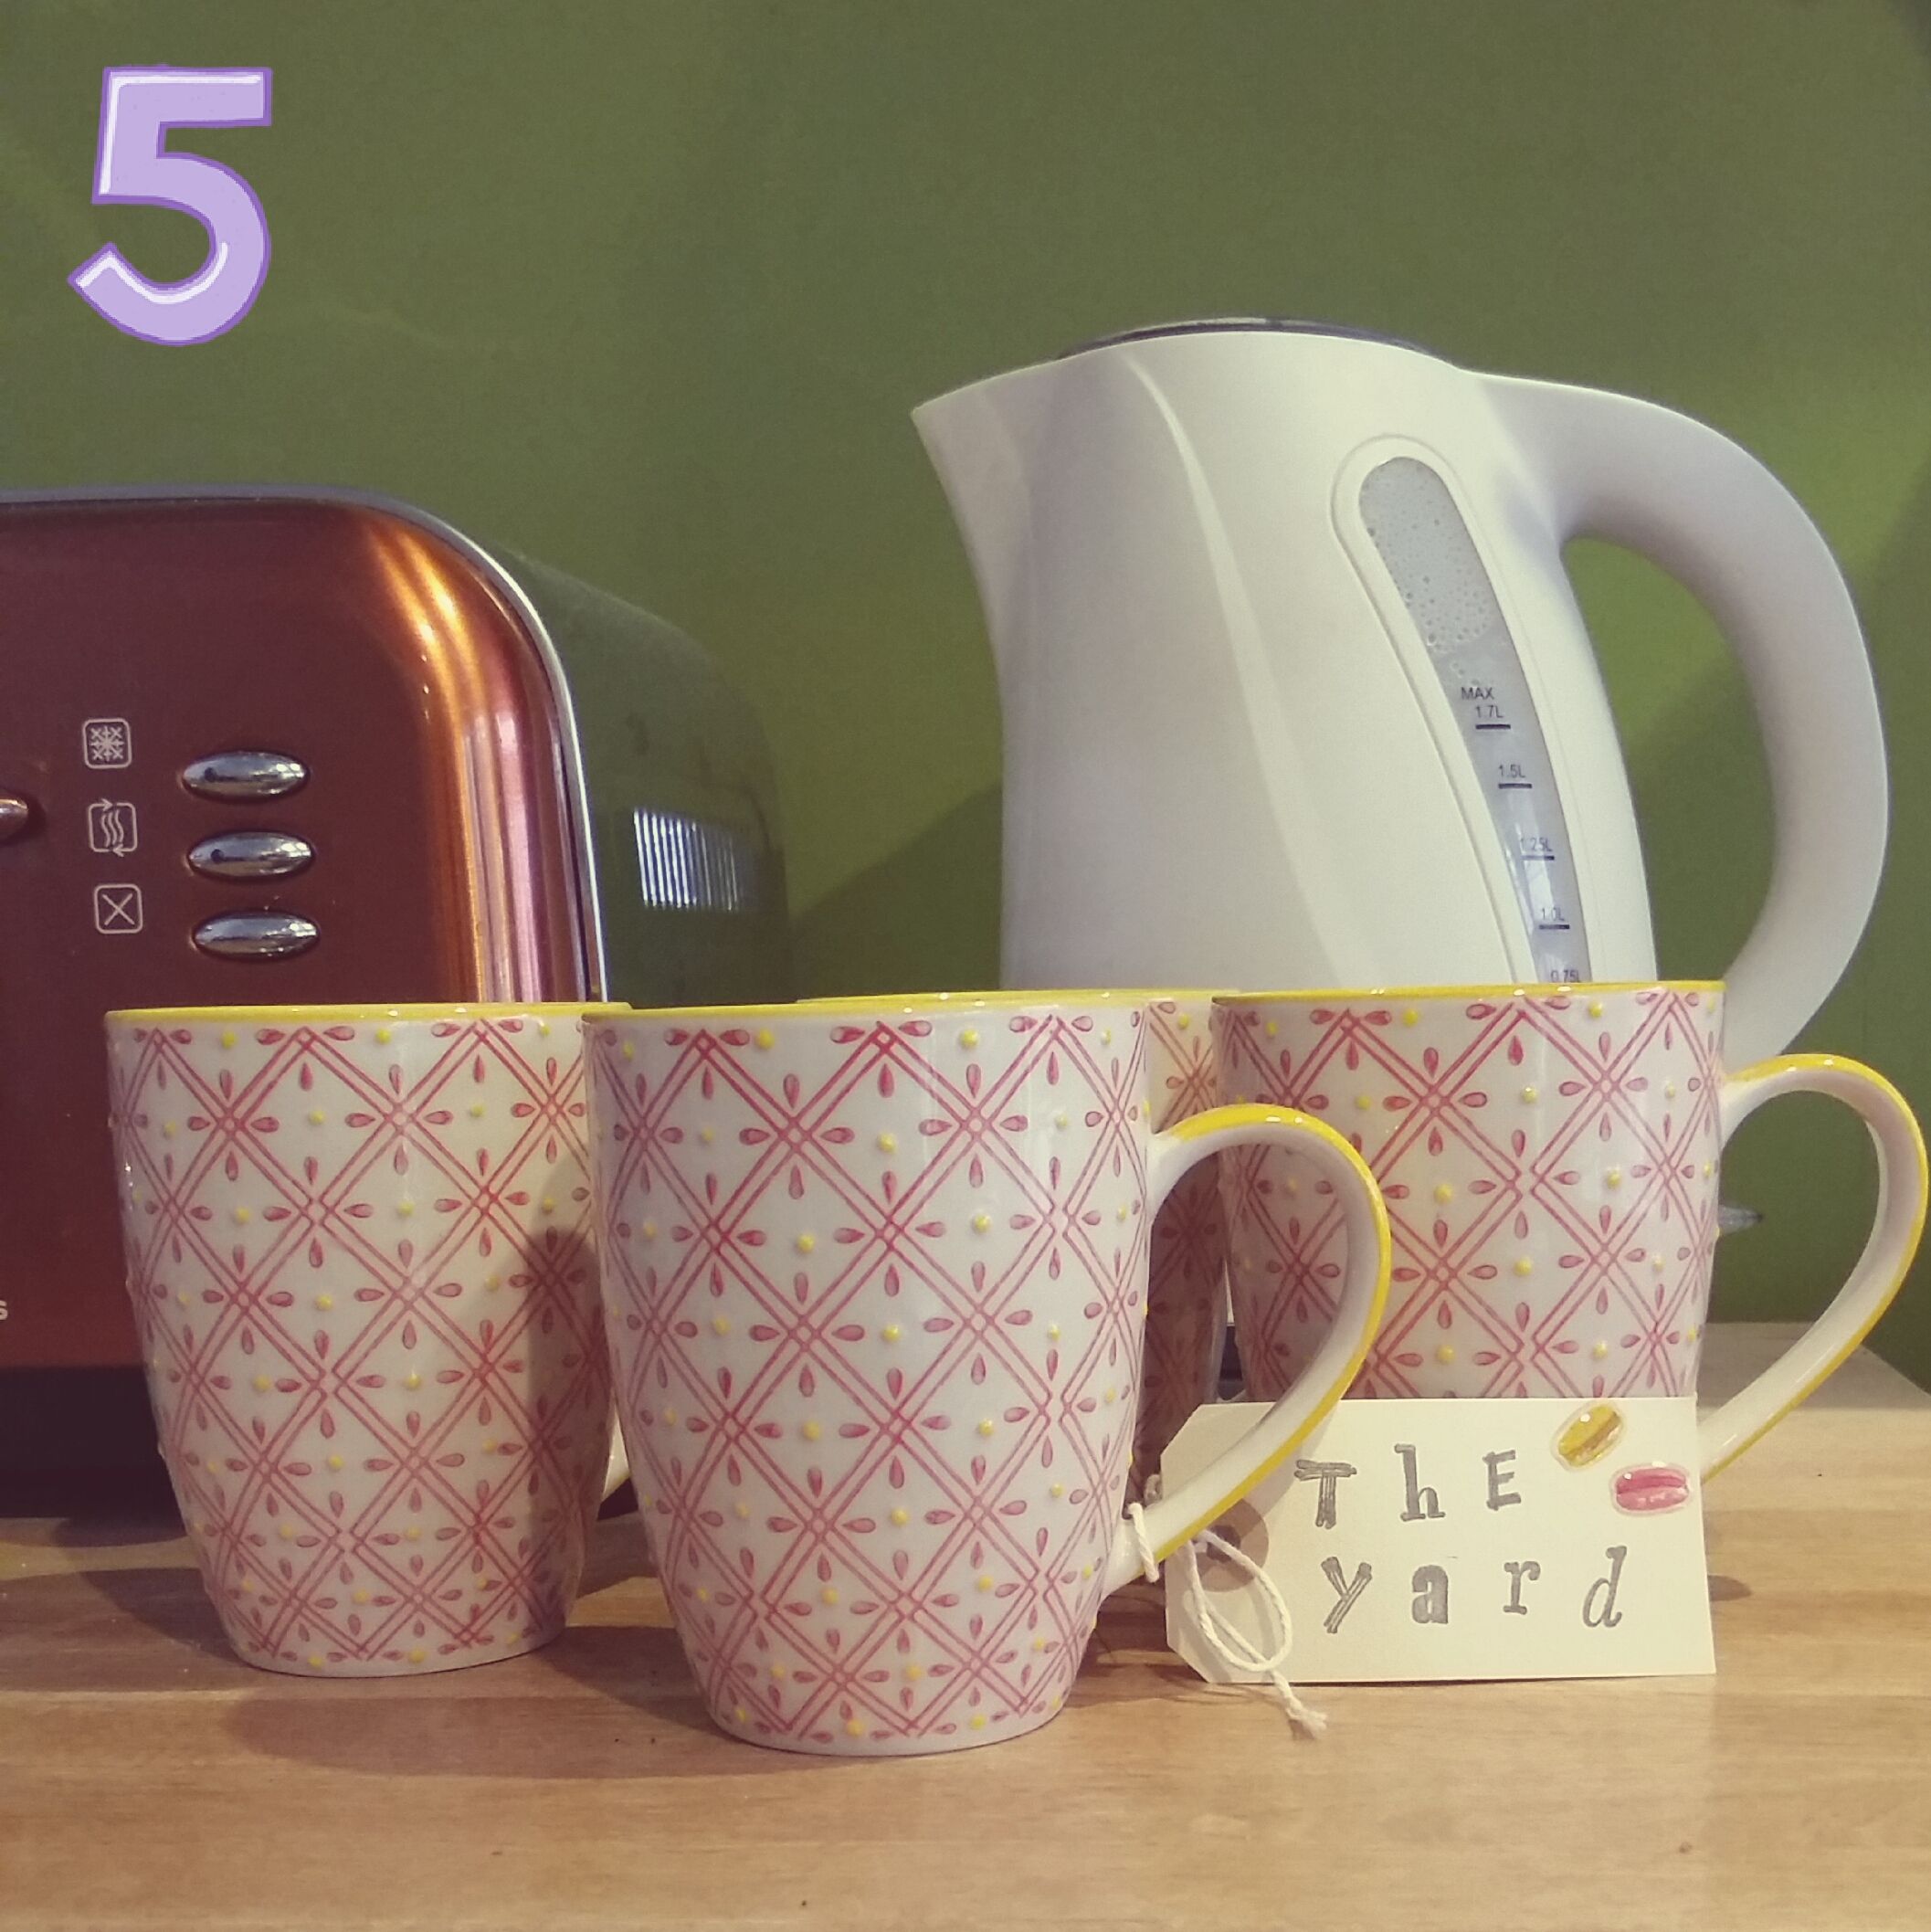 Yellow and red mugs £5.00 each